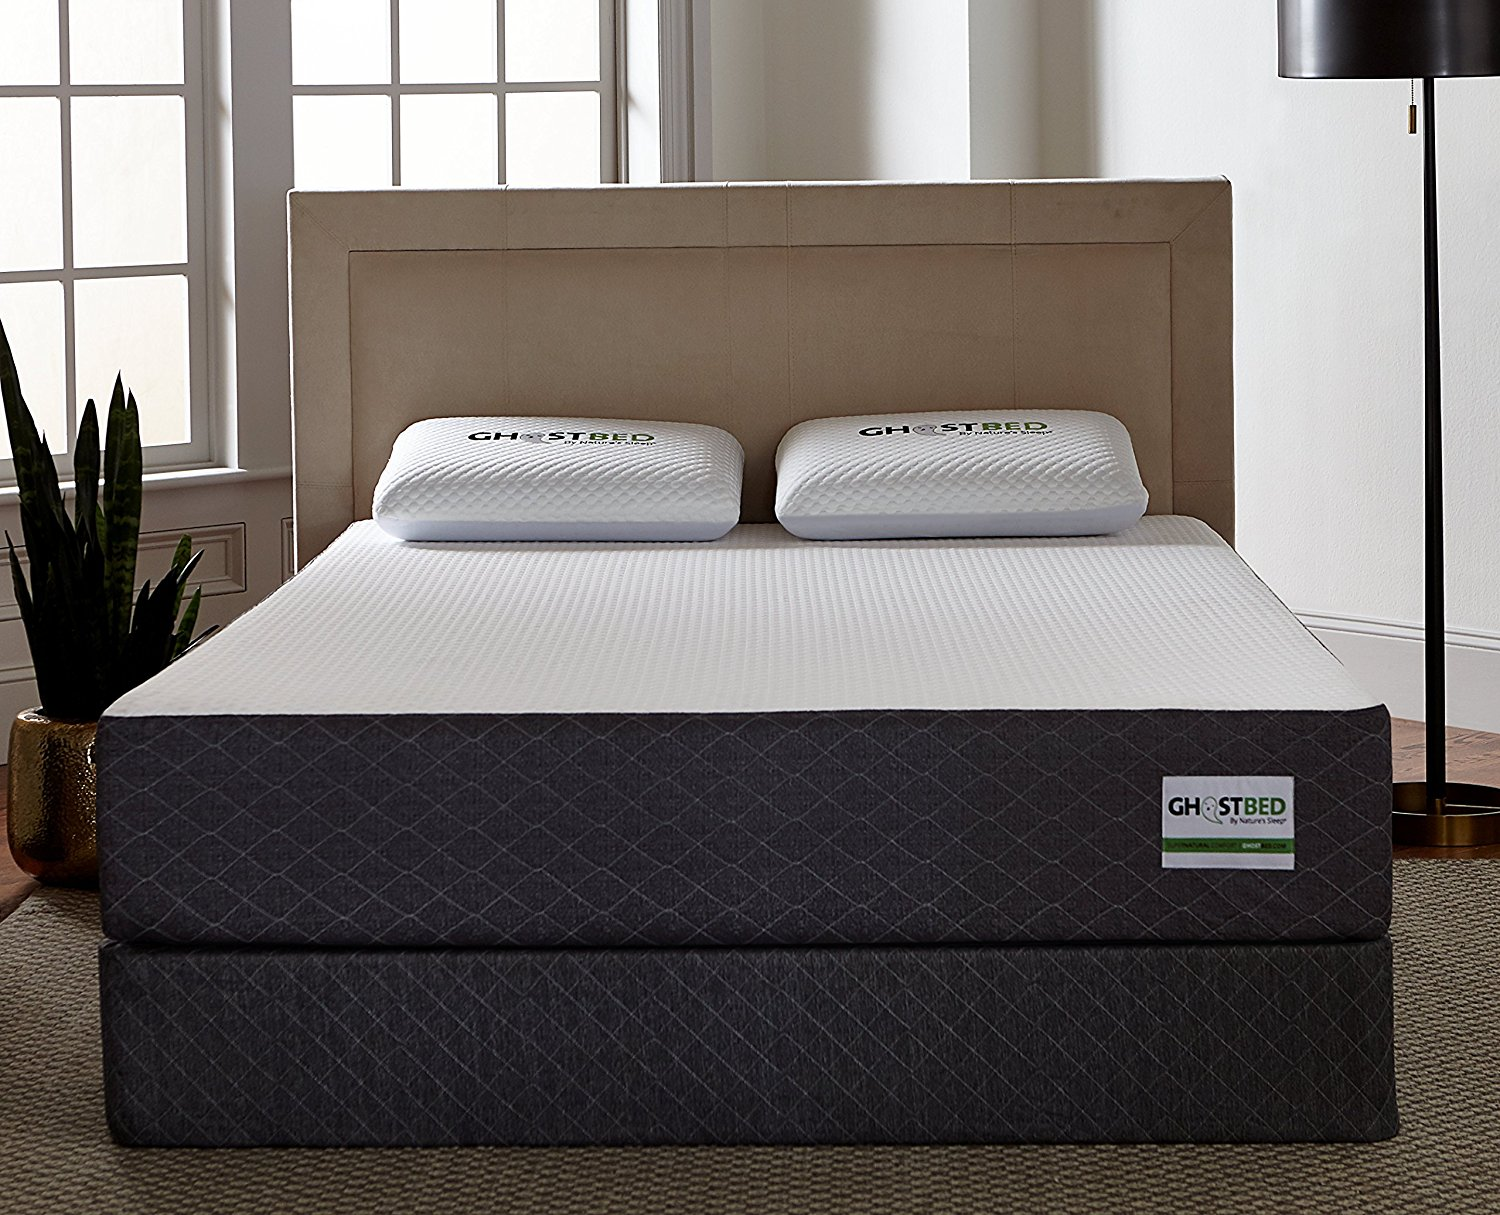 GhostBed Best Mattress For Heavy People review by www.snoremegazine.com